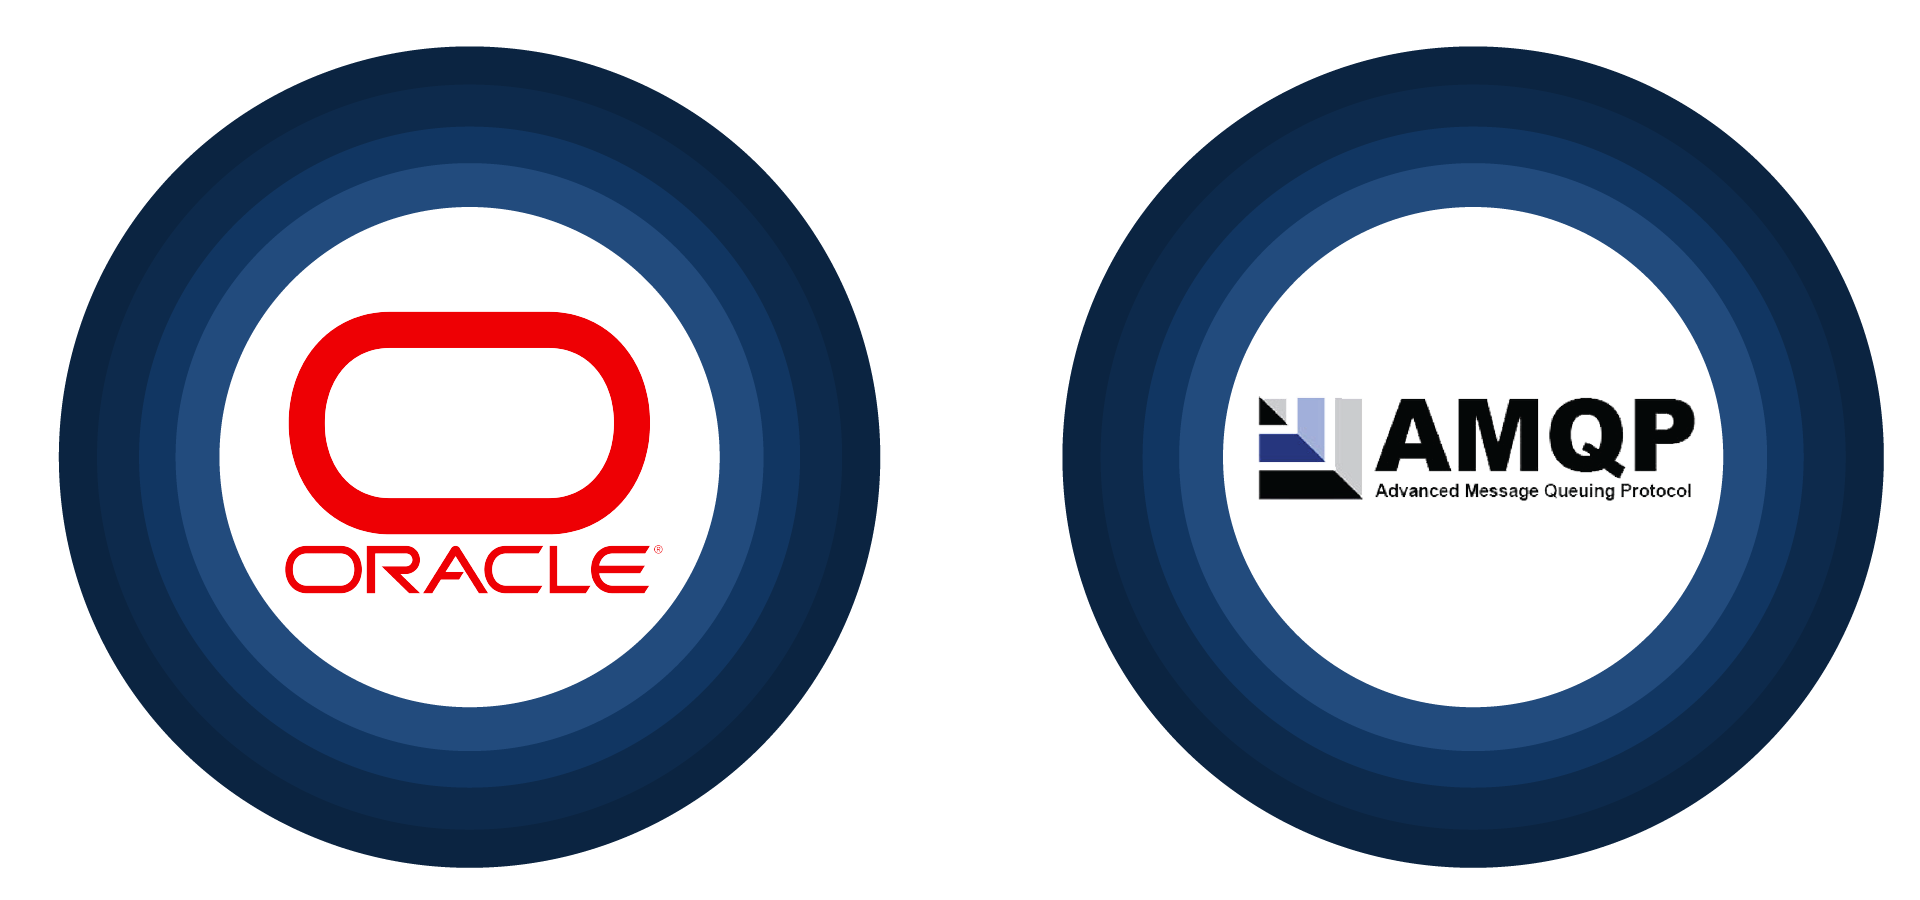 Product_Oracle-AMQP_V1-01